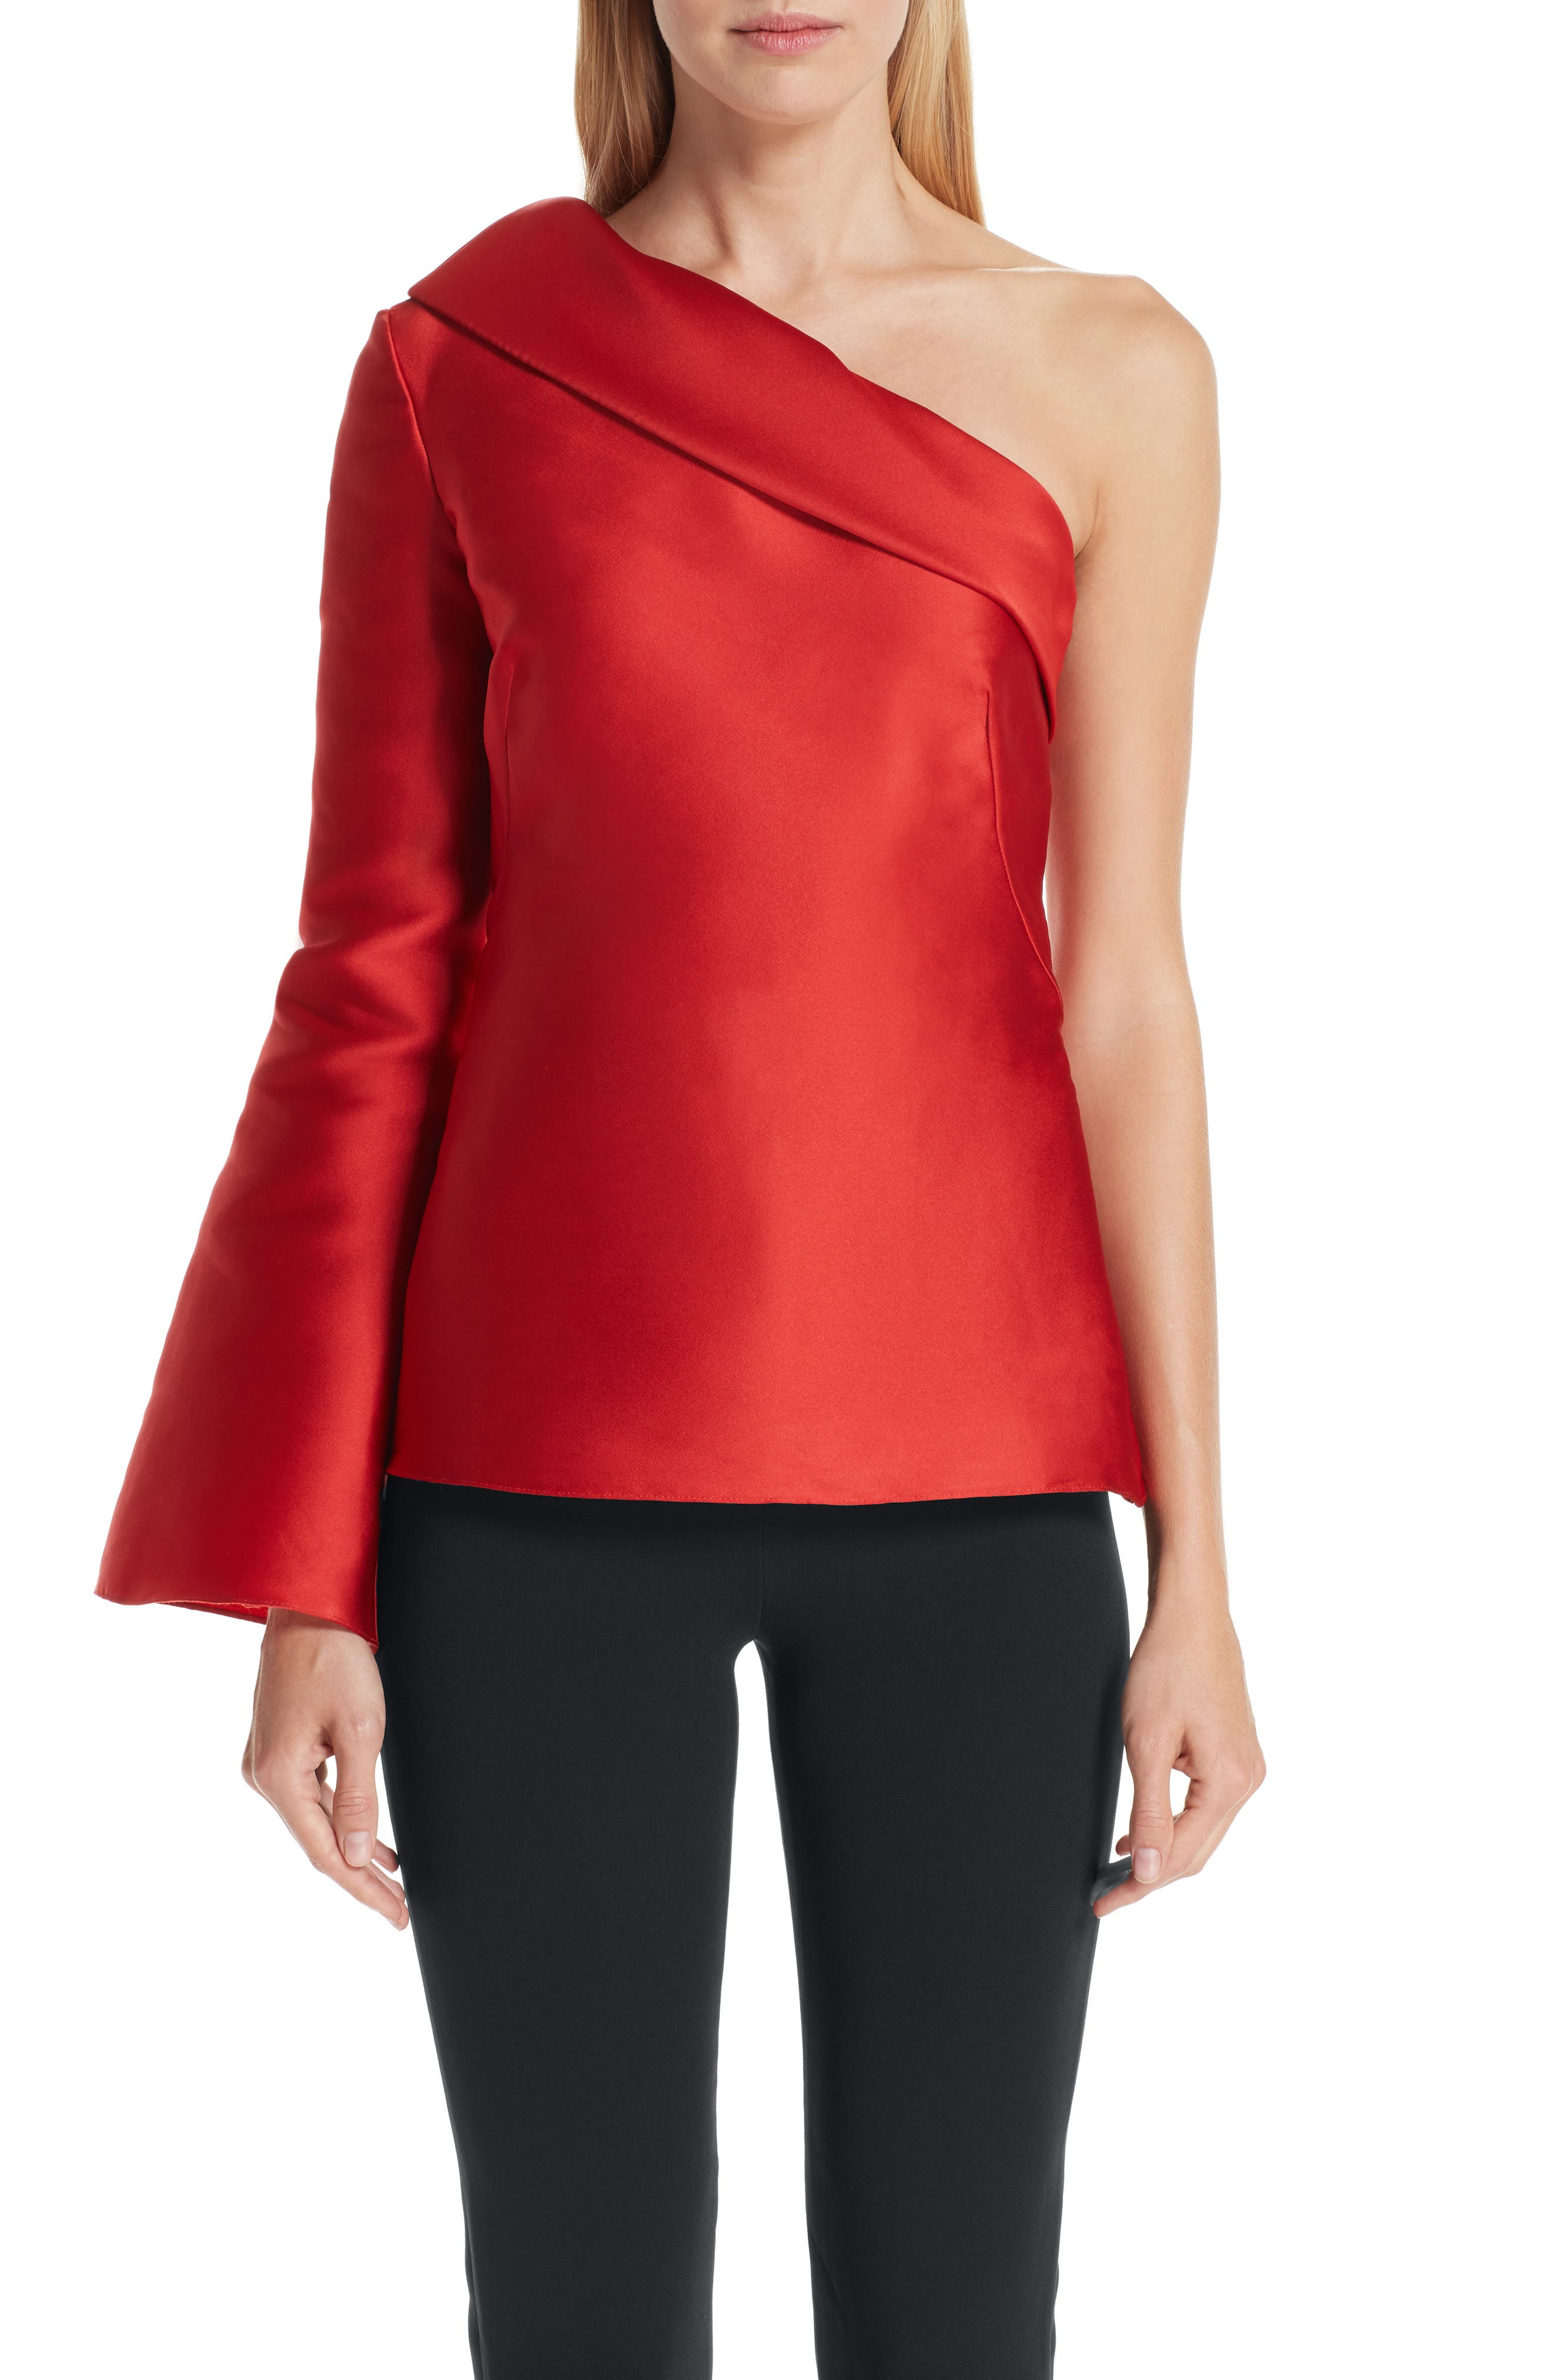 BRANDON MAXWELL, Fold Over One-Shoulder Top, Main thumbnail 1, color, POPPY